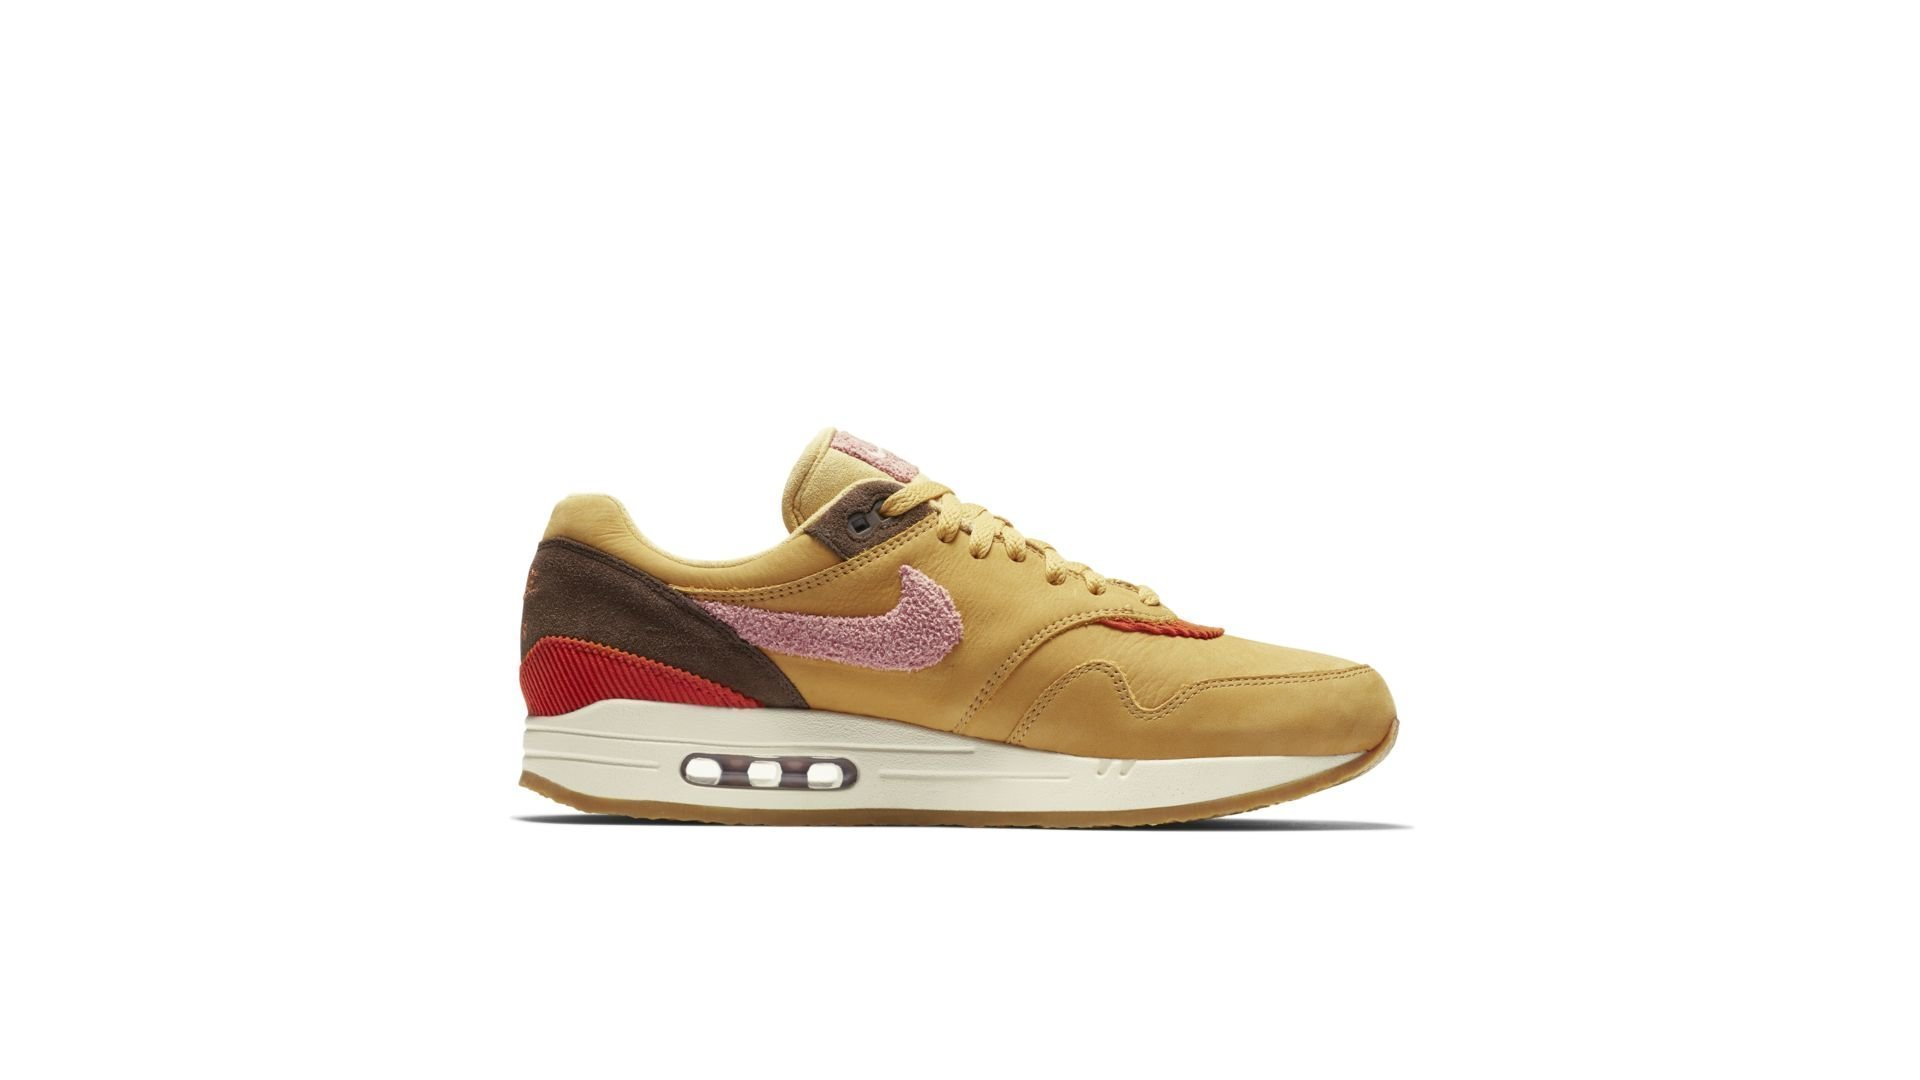 NIKE AIR MAX 1 CREPE SOLE CD7861-700